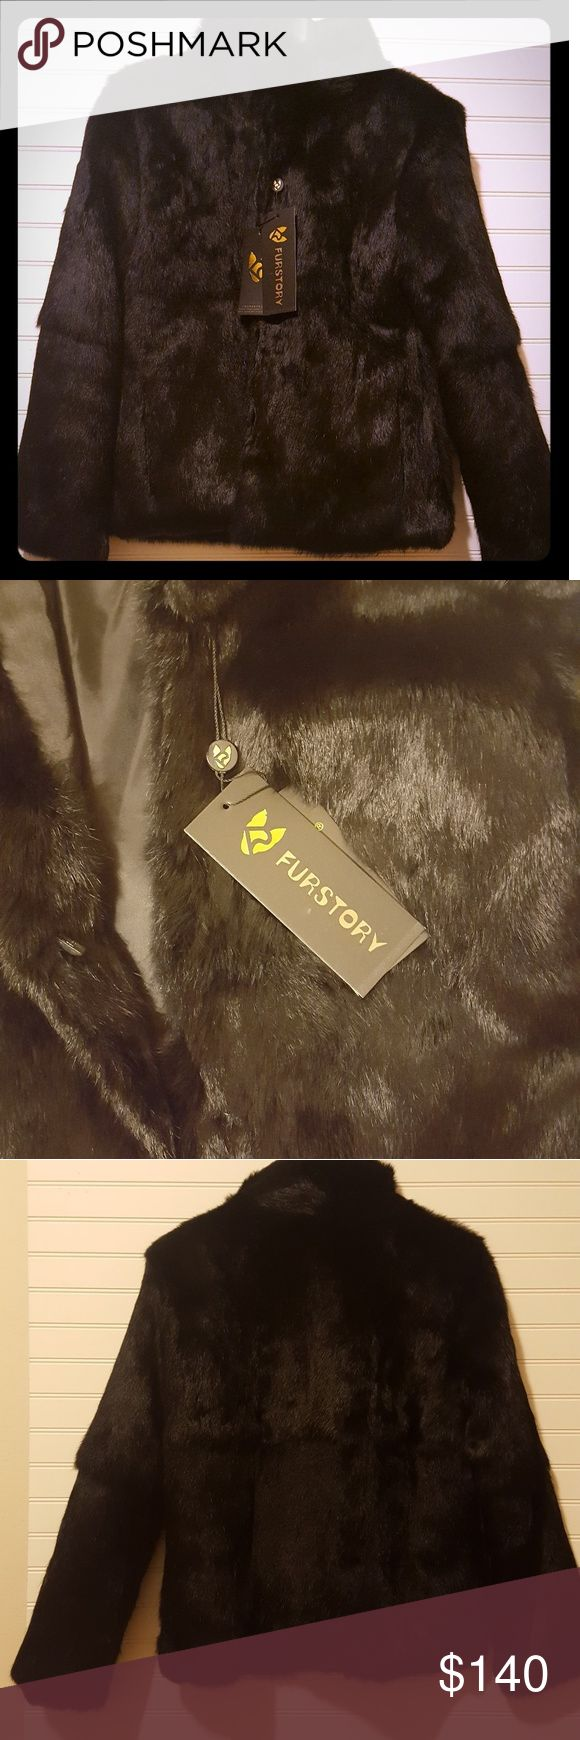 ❤NWT GENUINE RABBIT❤ Beautiful plush and warm GENUINE RABBIT FUR COAT 💕💕💕 Original tags on. Never worn, just to try on. Saddly a little too big on me. It's marked size 12, but Asian sizes run smaller. So the coat is more like American size 8-10. No shedding whatsoever. Clasp closures. Tall collar. Front pockets. Color black. Genuine rabbit, polyester lining  Armpit to armpit (flat) 20 inches  Collar(front) 3 inches Length(flat) from shoulder seam 23.5 inches  Sleeves(flat) from shoulder…